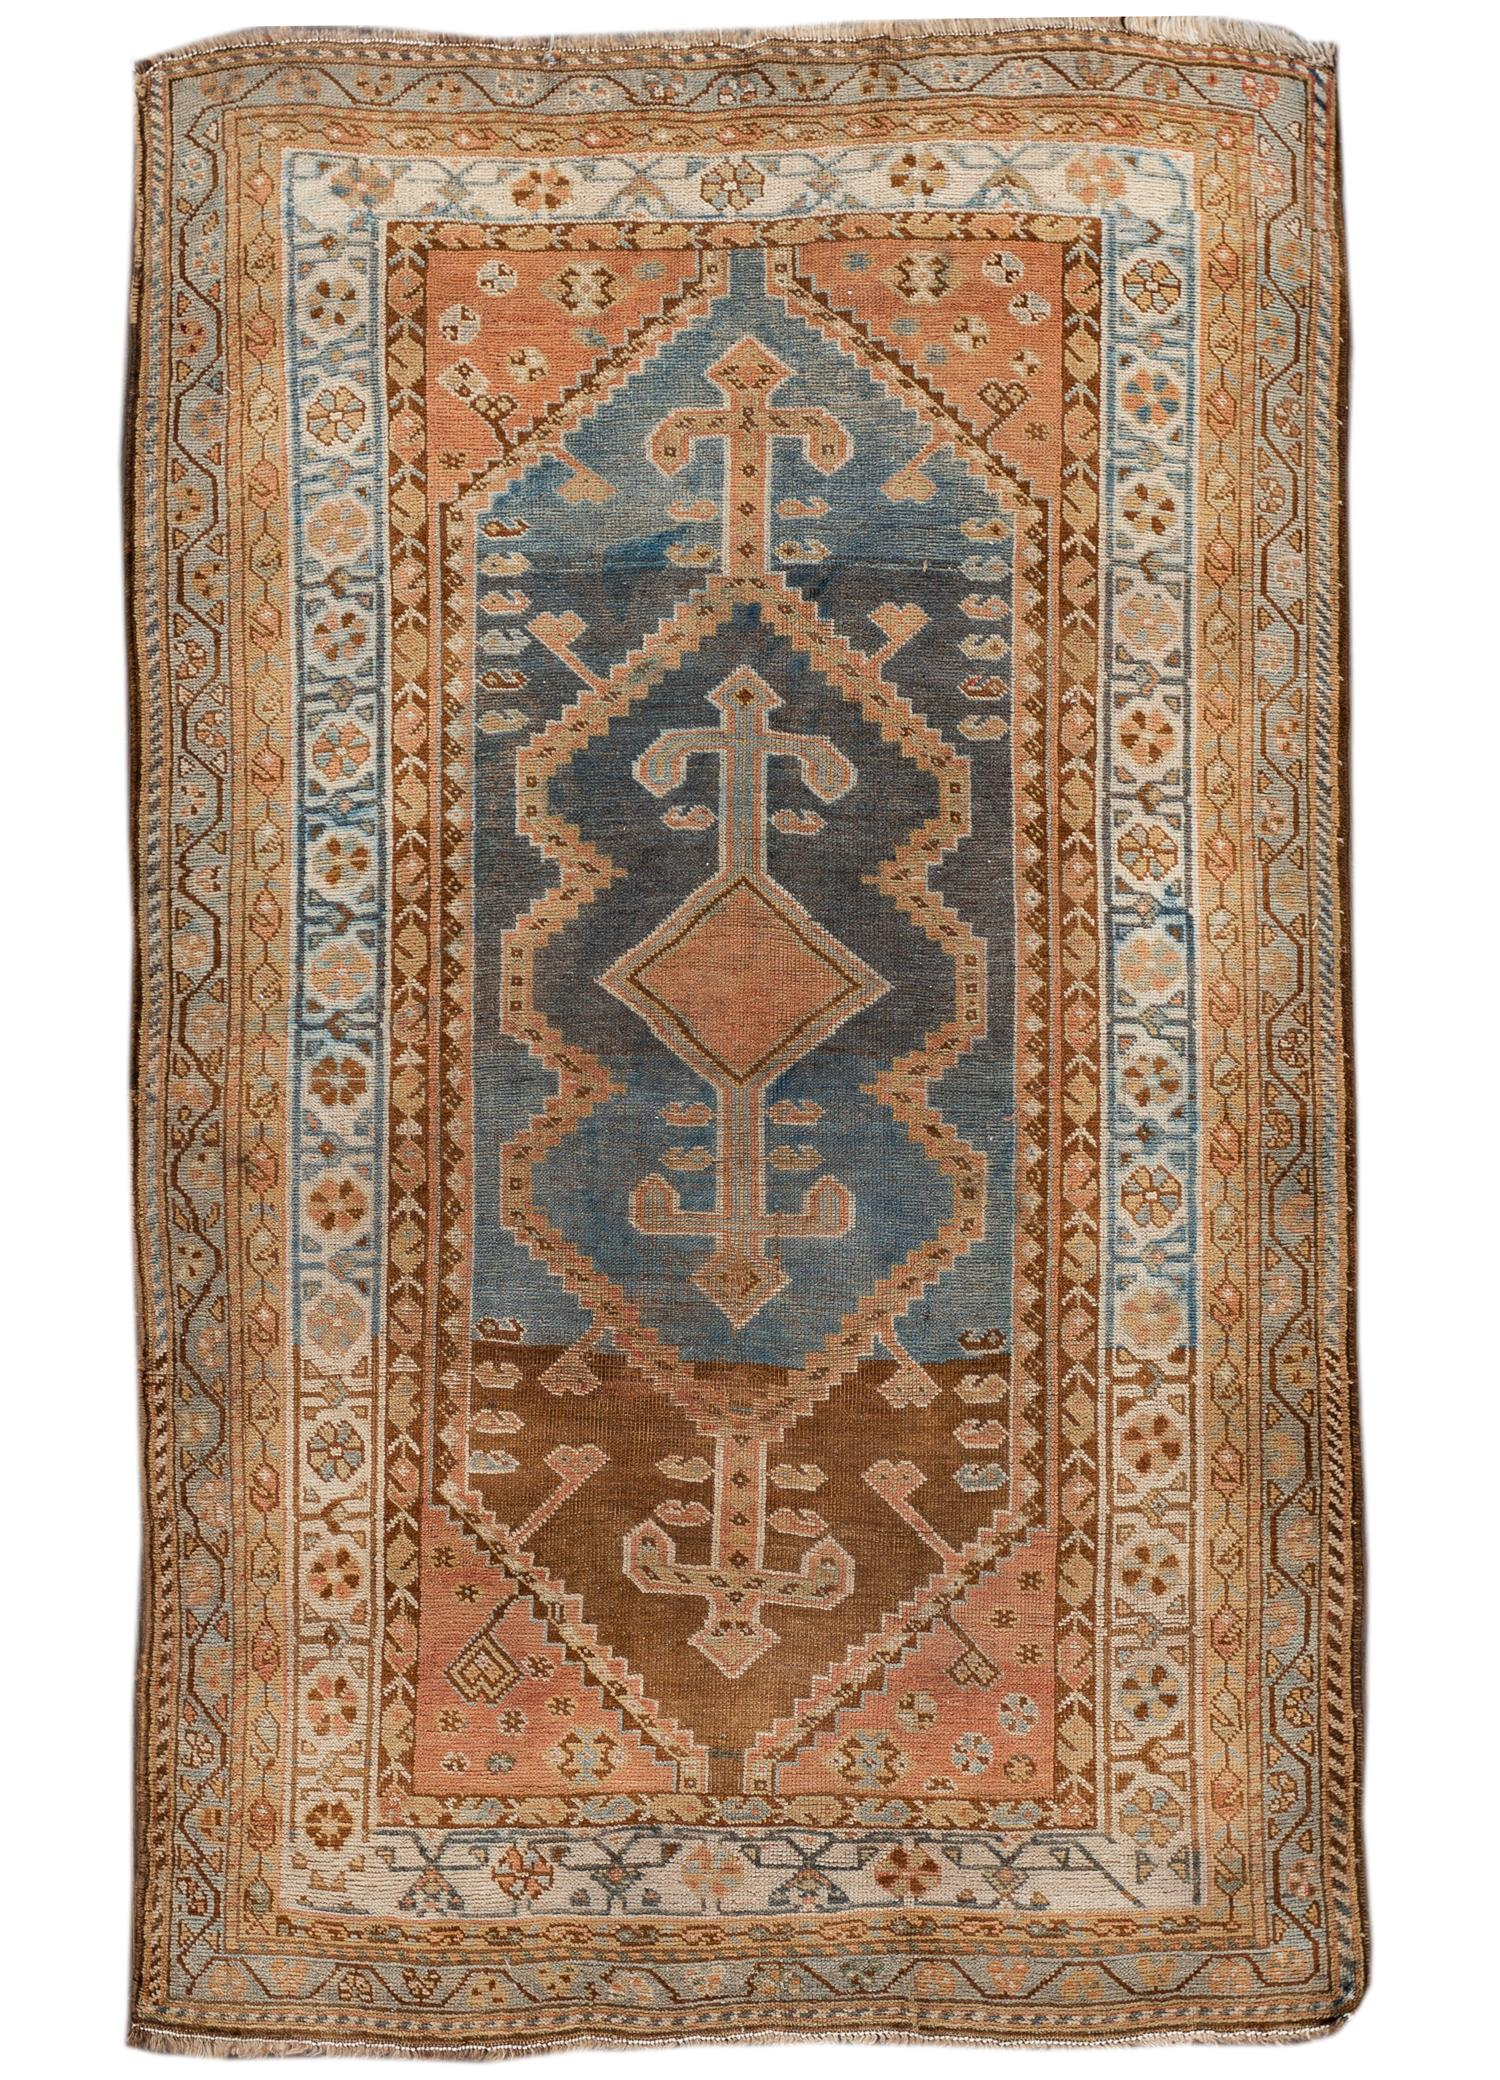 Antique Afshar Rug, #10235252, 5X8